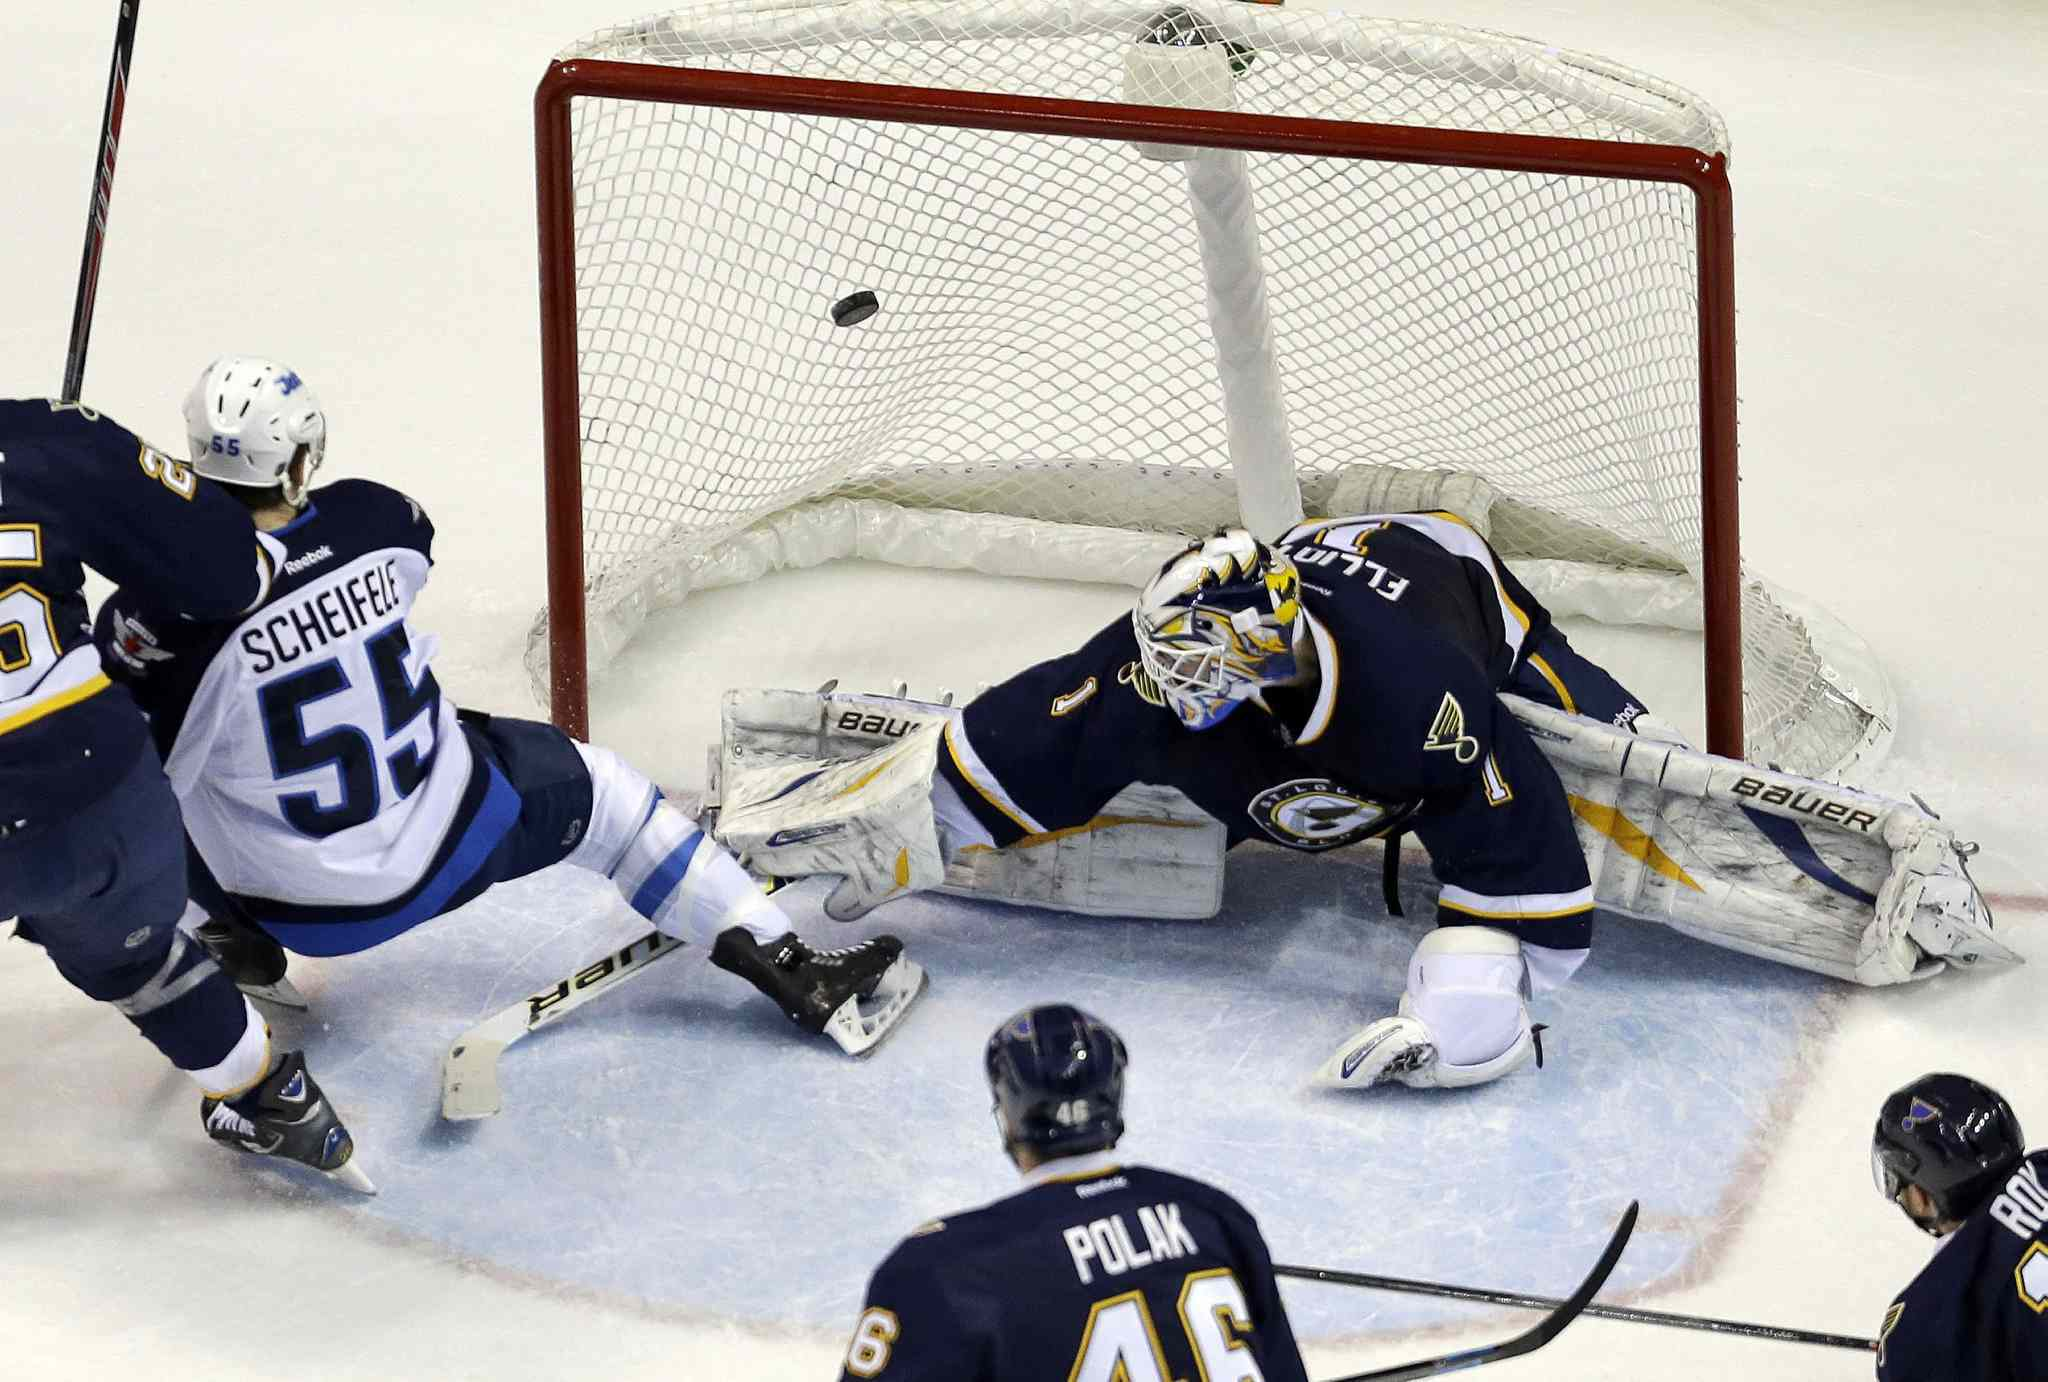 Winnipeg Jets' Mark Scheifele (55) scores a second-period goal past St. Louis Blues' goalie Brian Elliott during Saturday's game in St. Louis.